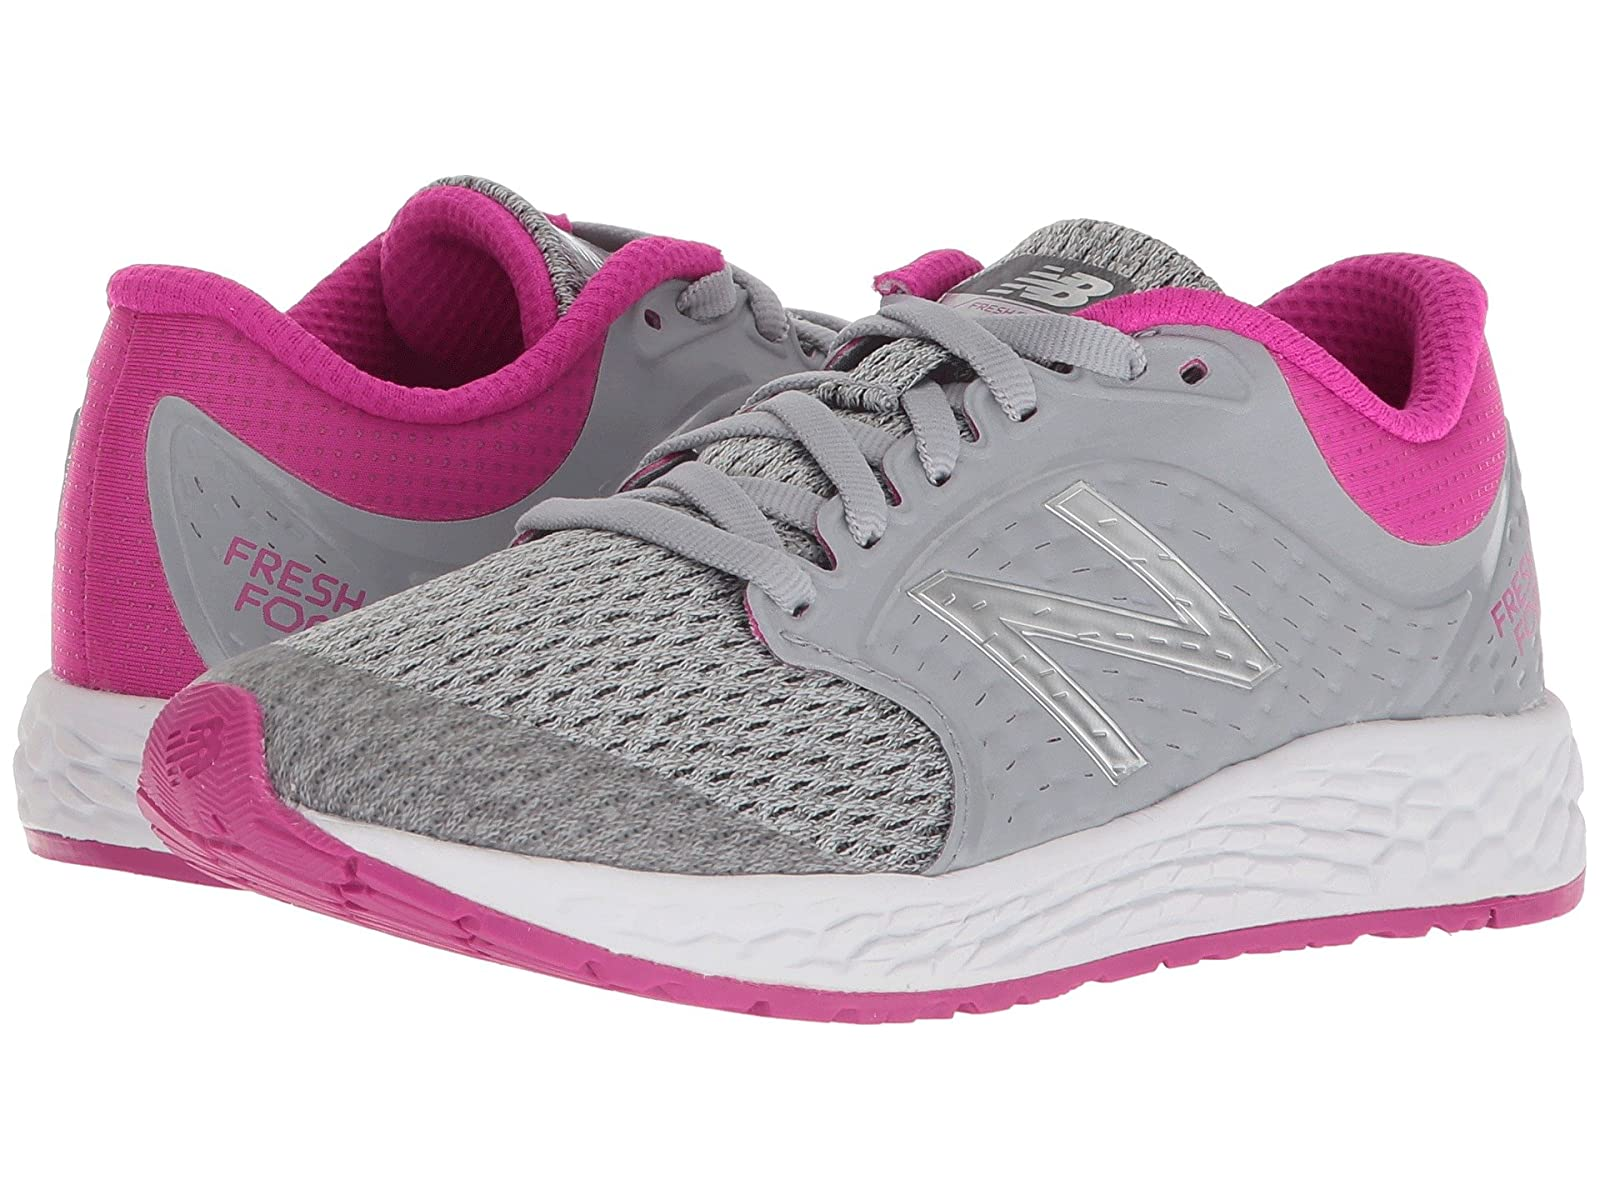 New Balance Kids KJZNTv4P (Little Kid)Atmospheric grades have affordable shoes